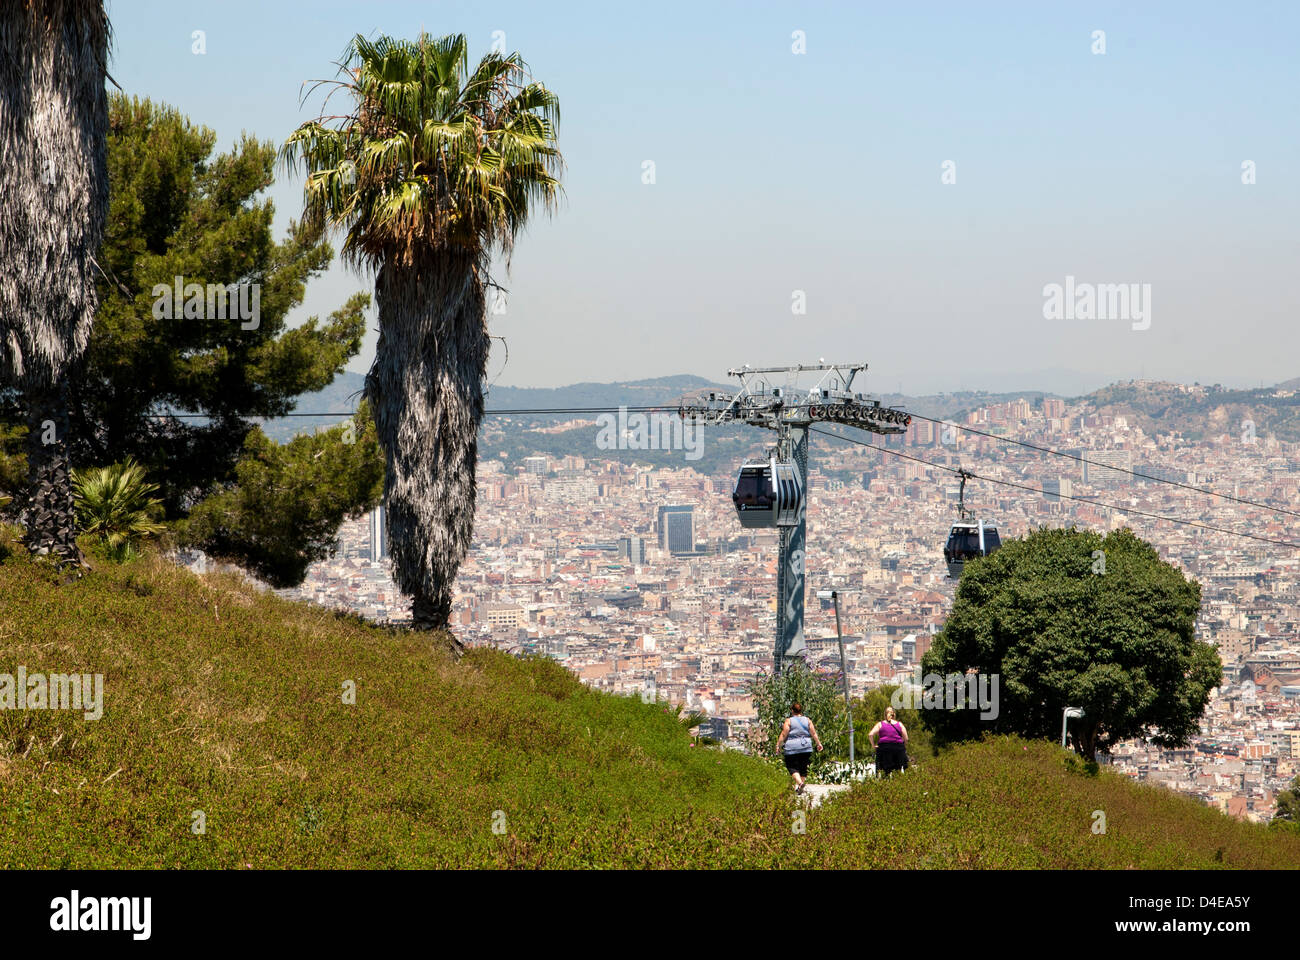 Cable car to Montjuic, Barcelona (Catalunya), Spain - Stock Image